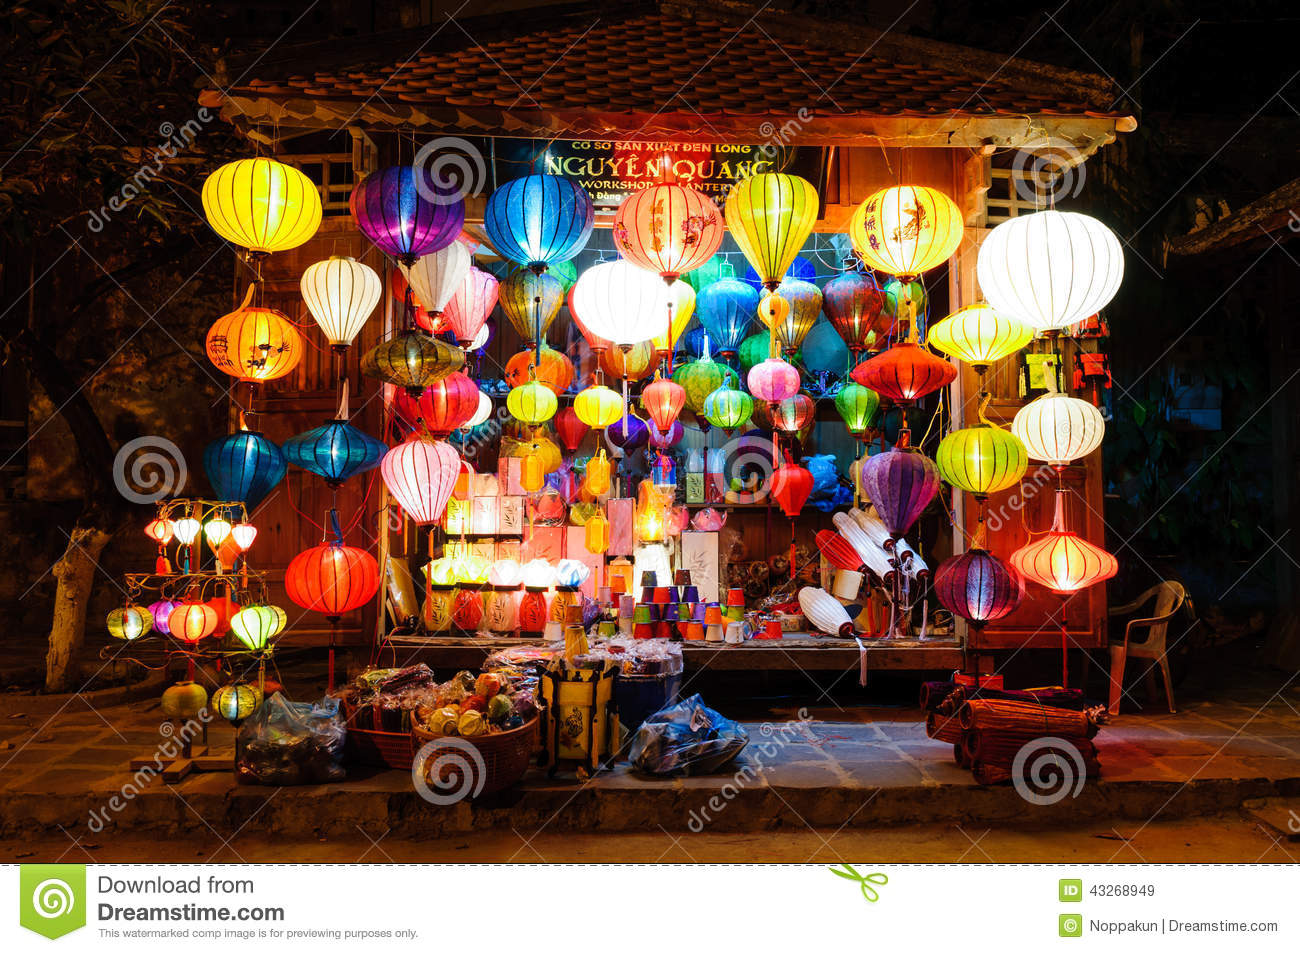 HOI AN, VIETNAM - MARCH 13: Traditional lanterns store on March